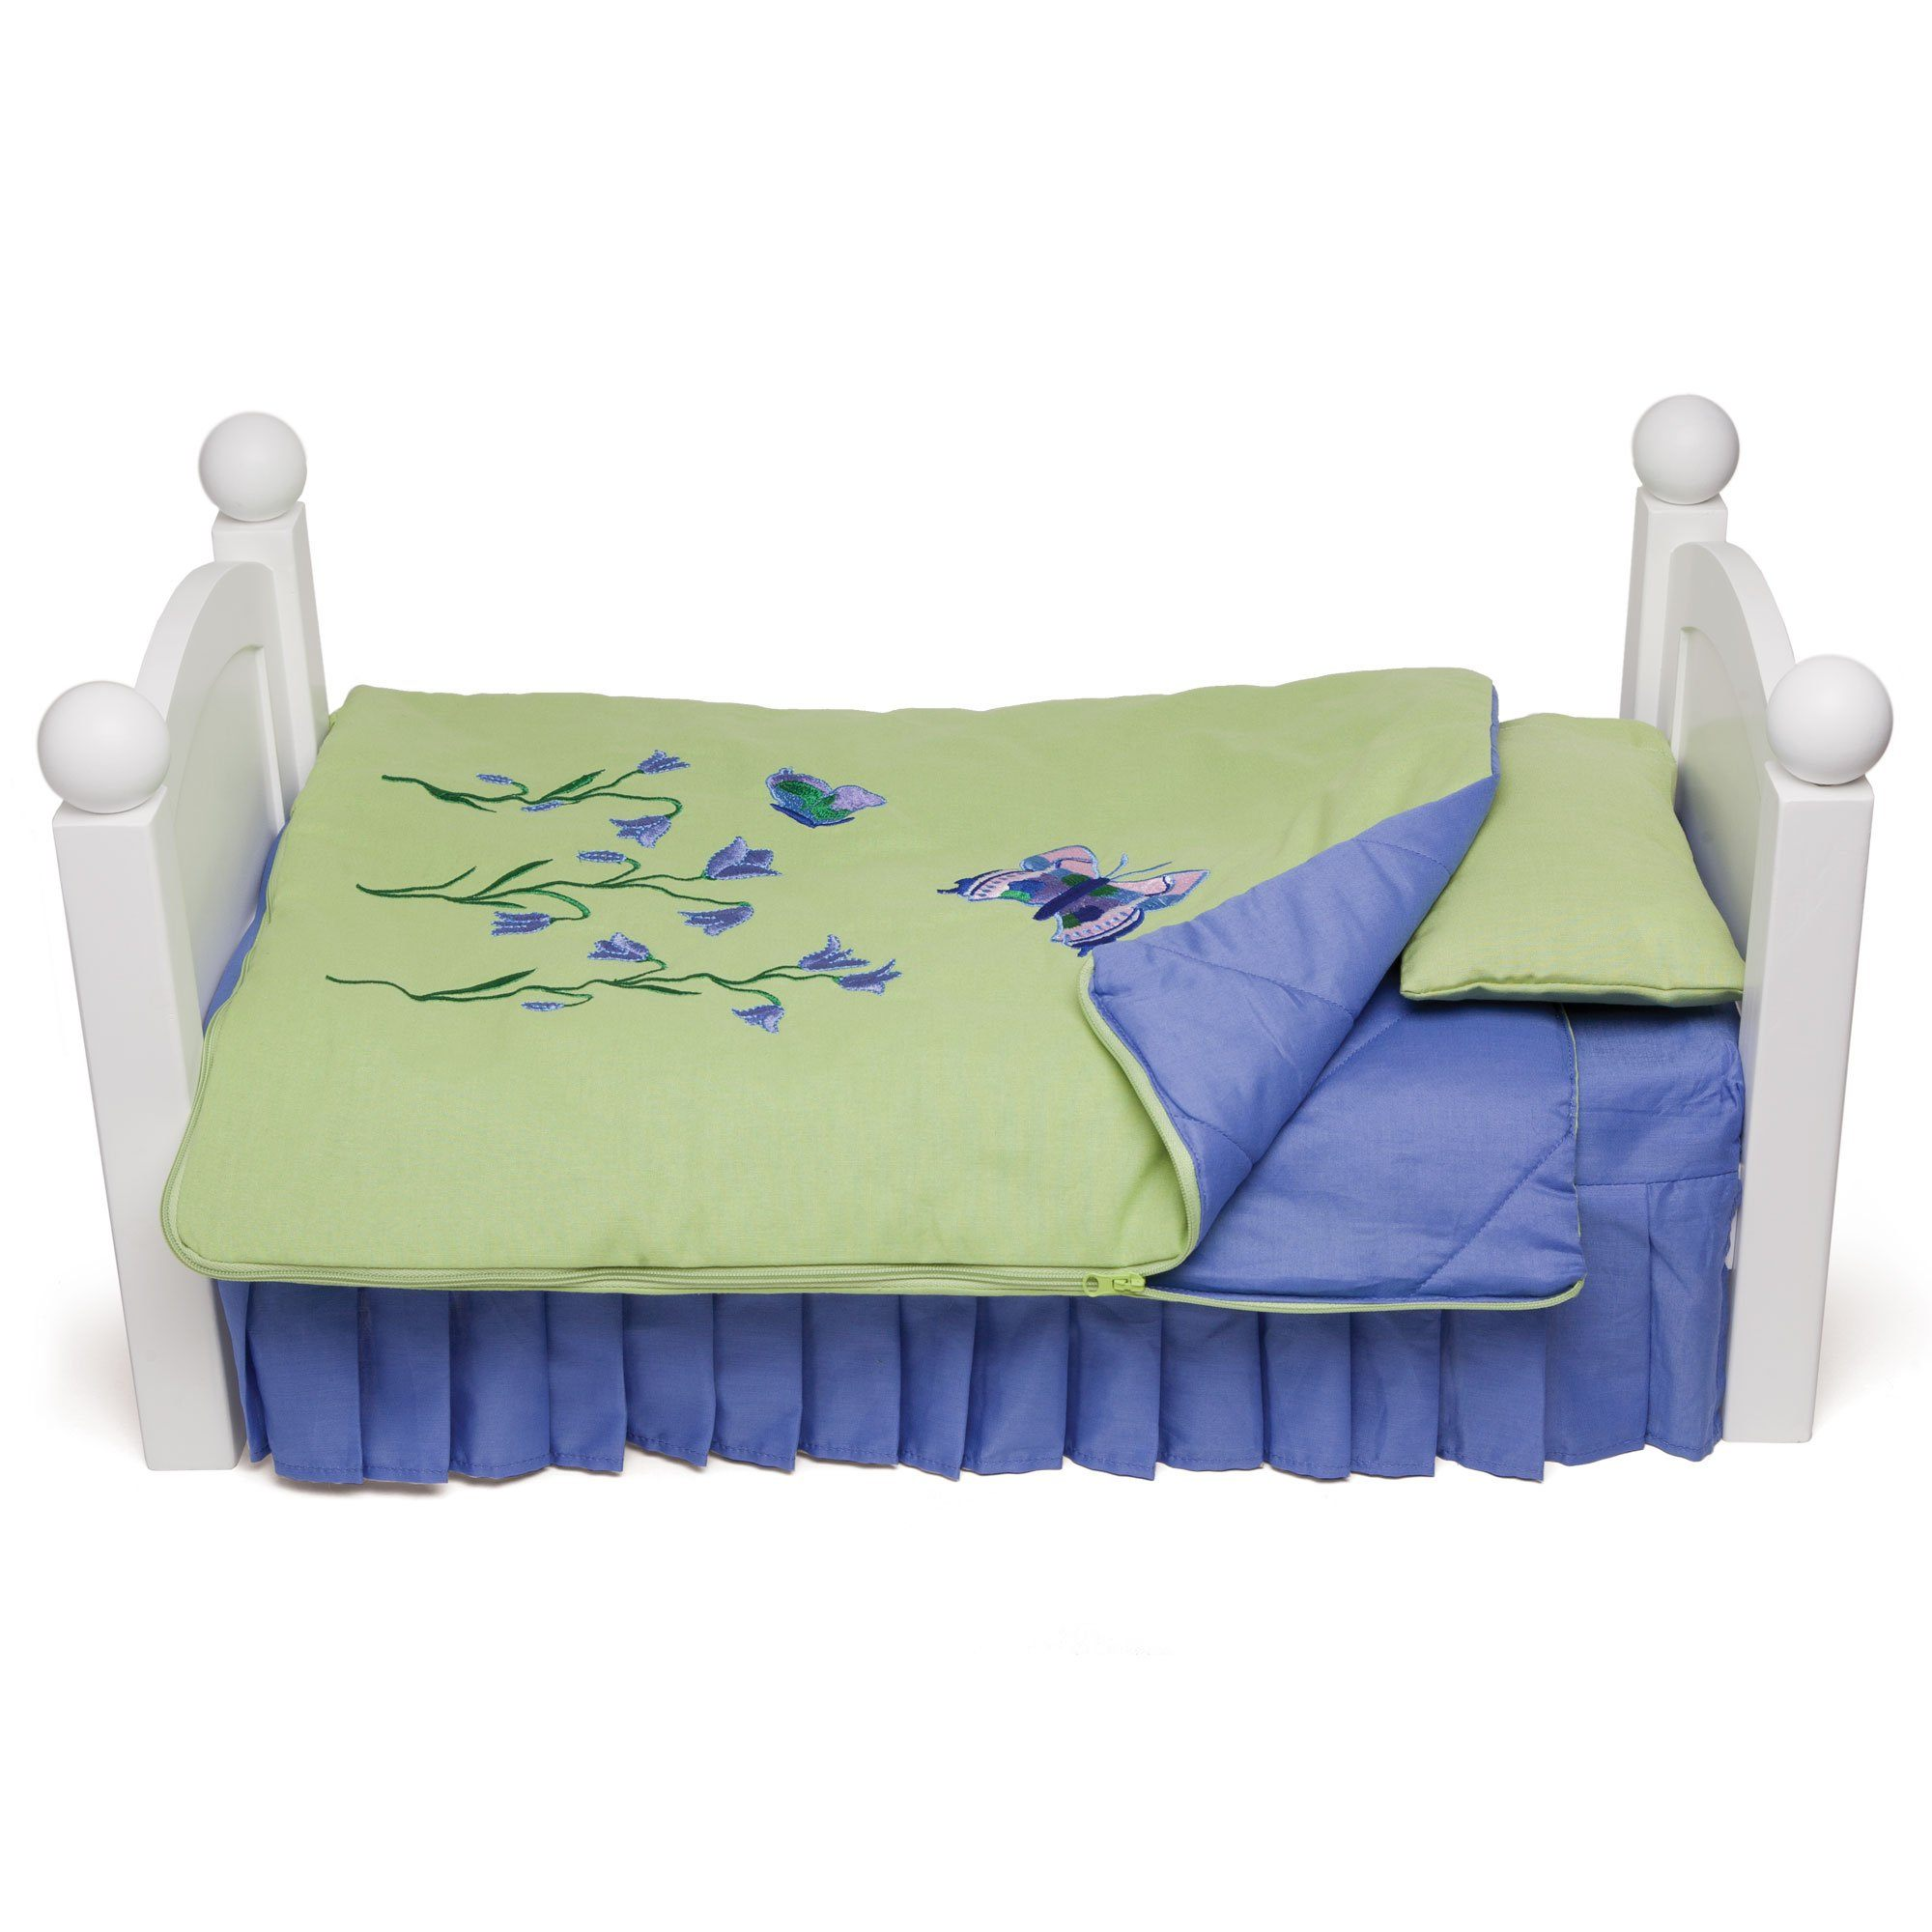 Green and purple butterfly bedding for Maplelea doll Taryn. Shown on KM1 Maplelea doll bed.